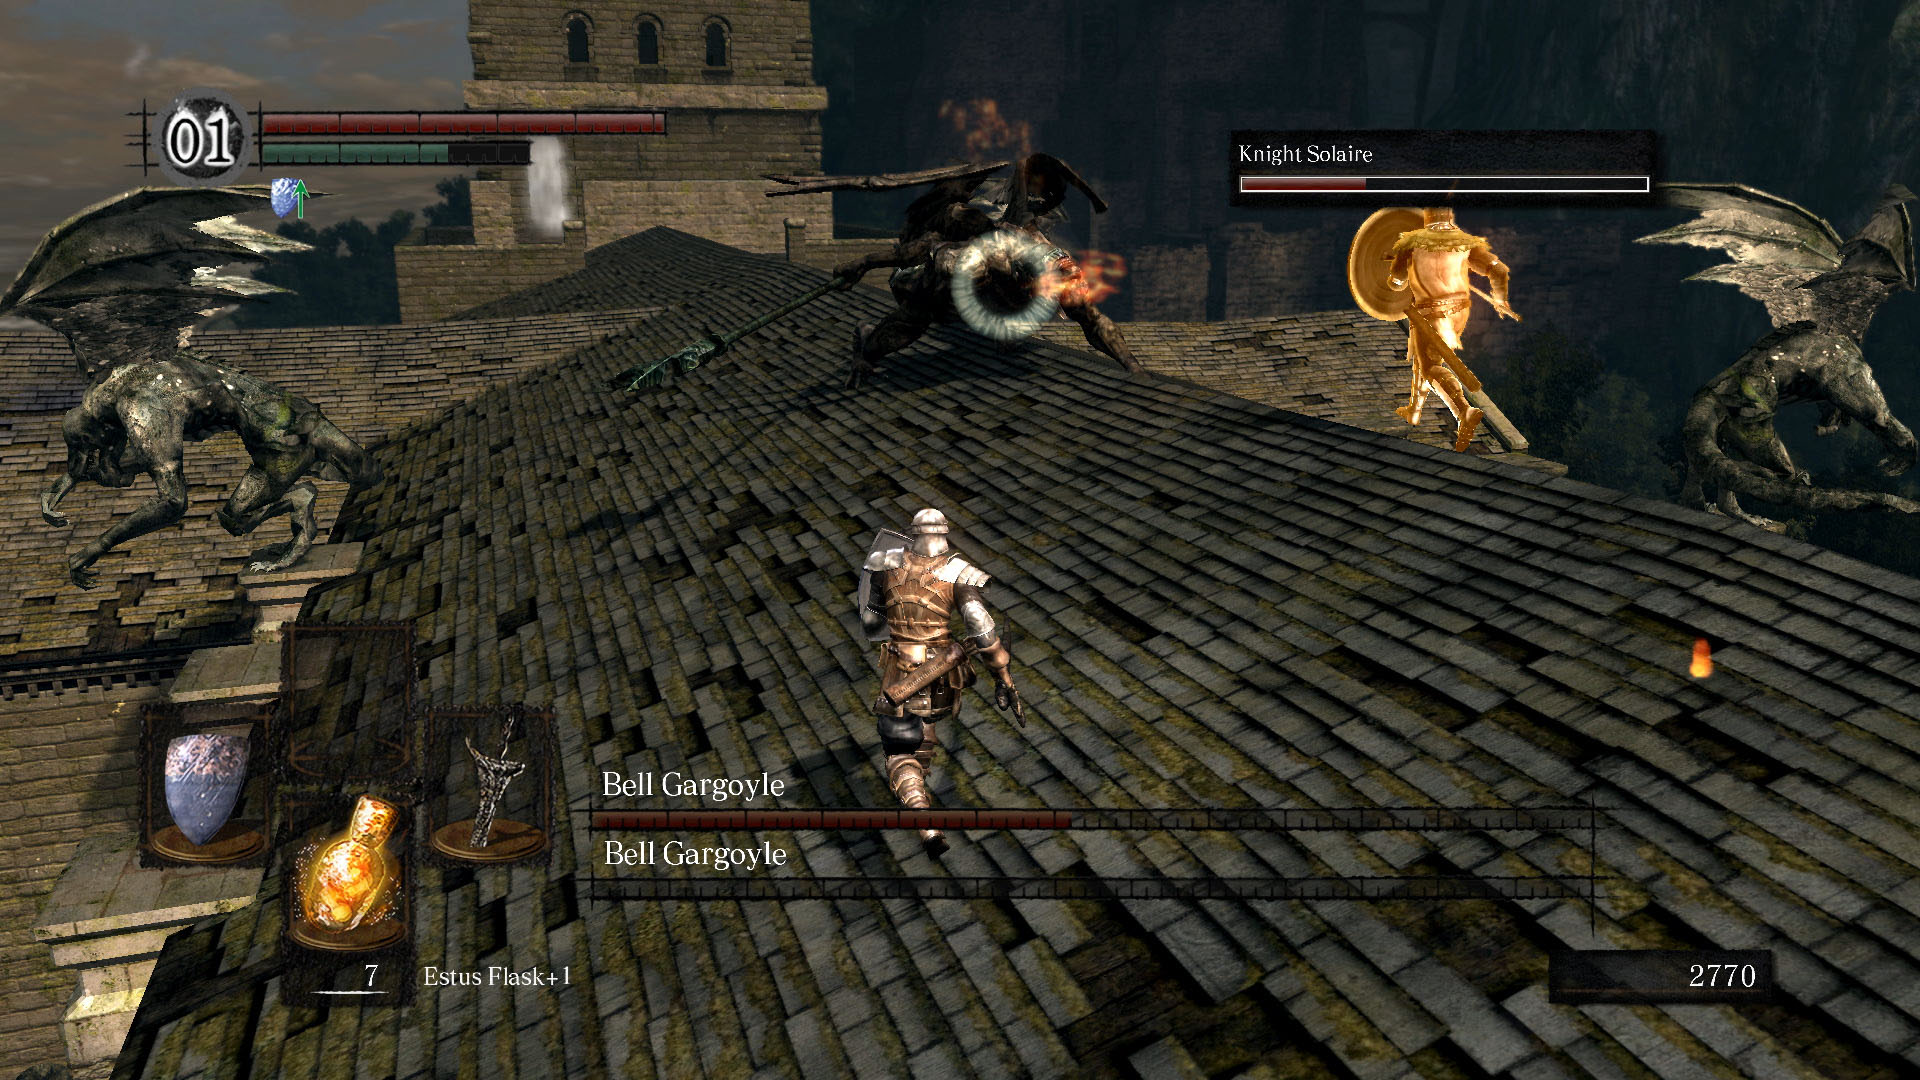 The original Dark Souls by FromSoftware.